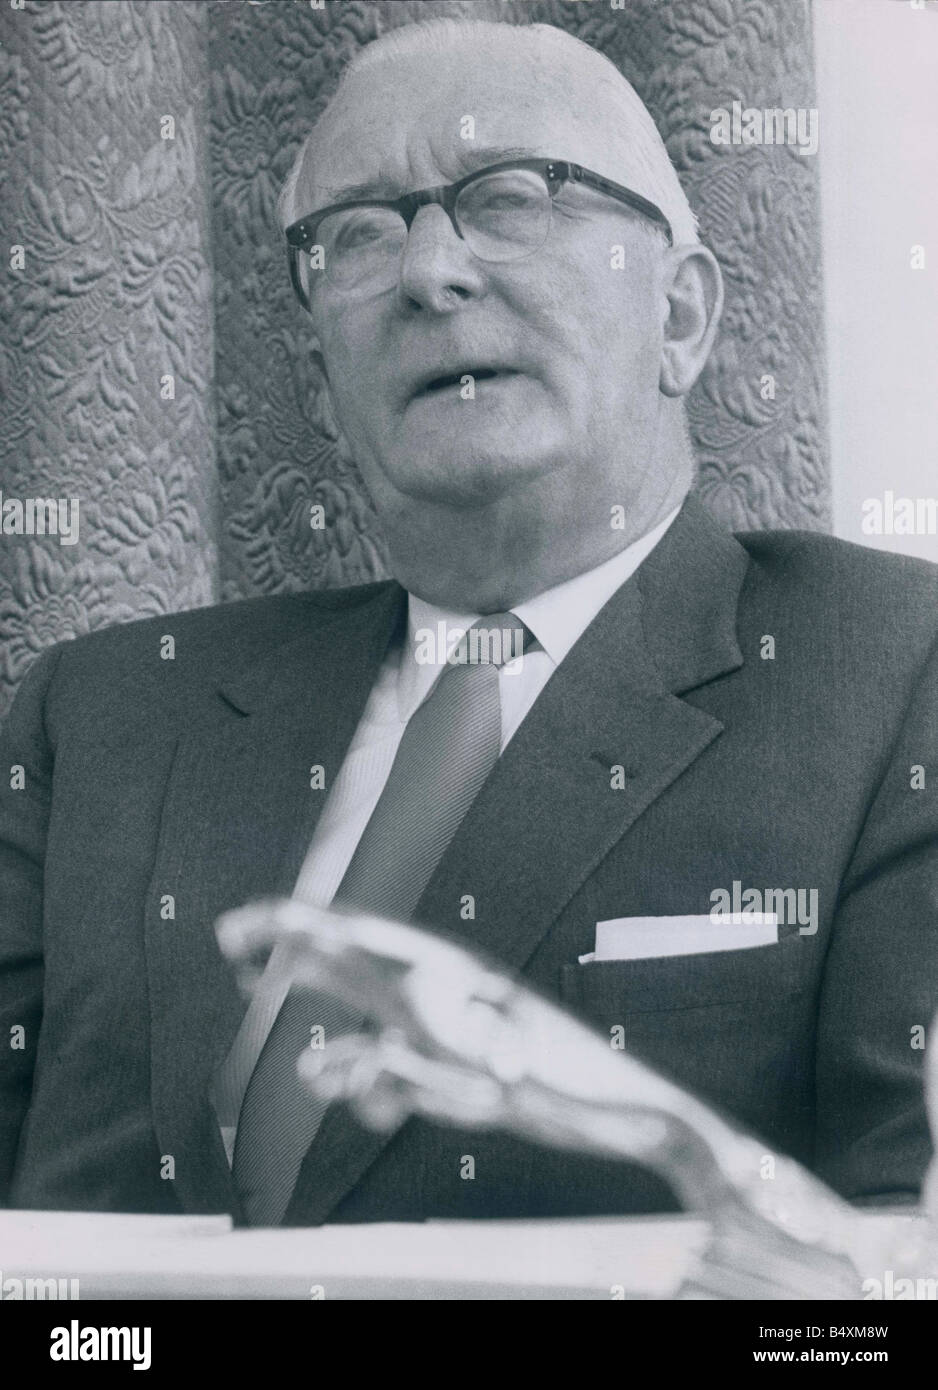 Sir William Lyons Who Is The Founder And Chairman Of